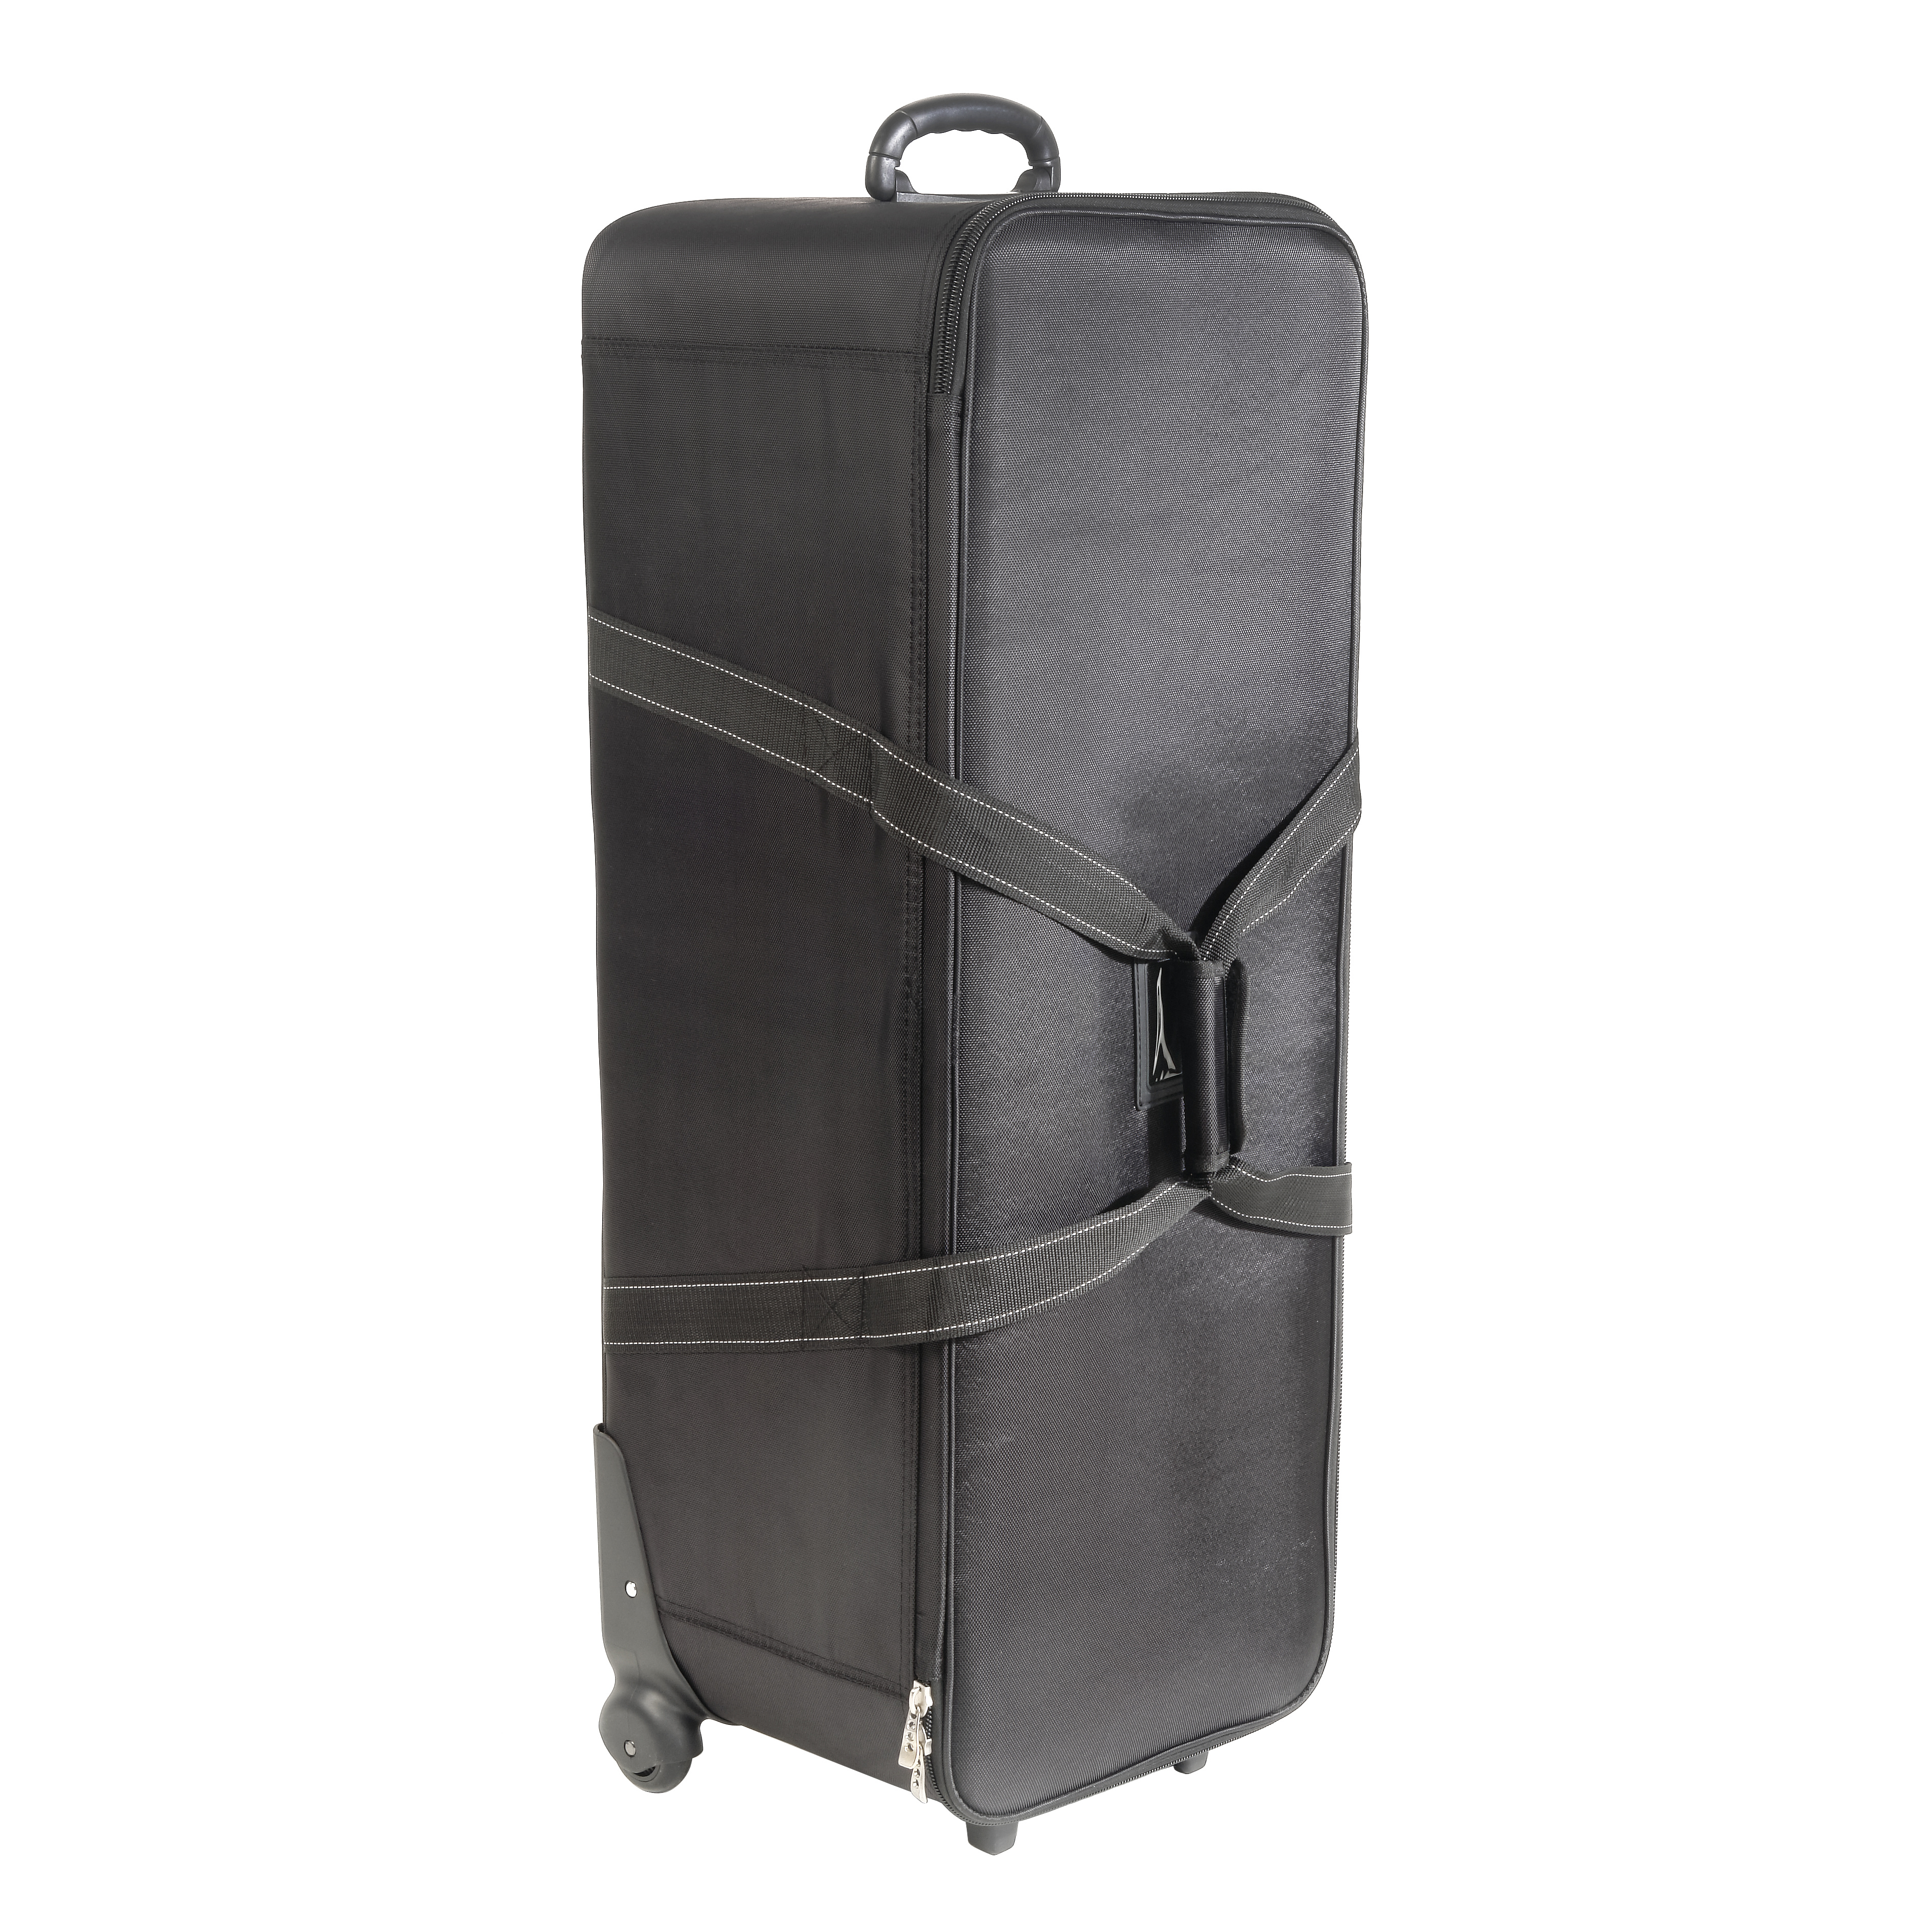 Сумка Falcon Eyes CC-16 на колесах